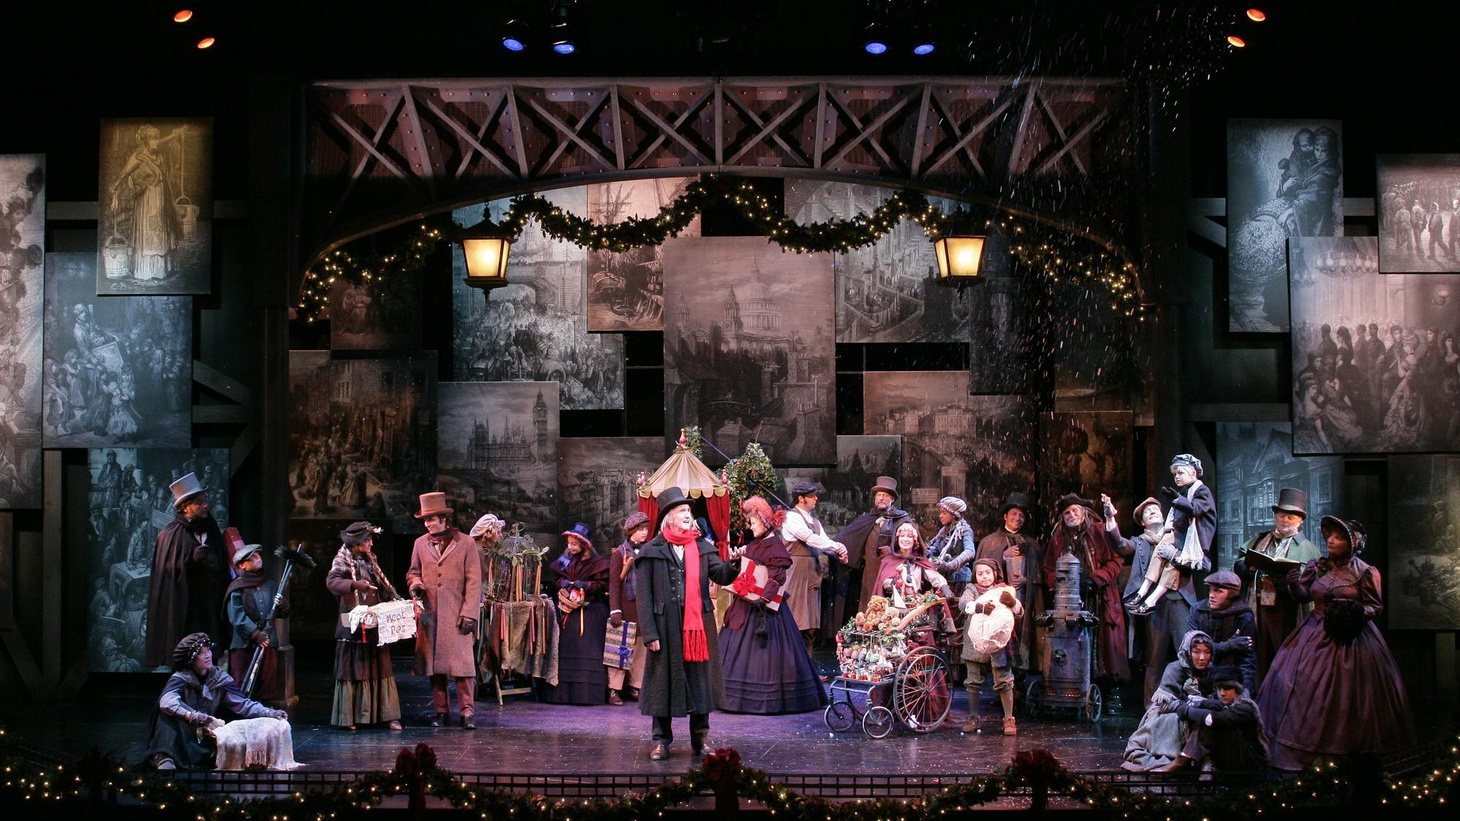 LA theaters are filled with festive holiday fare. So in the spirit of holidays both past and present, here's a quick guide to your perfect holiday theater tradition.